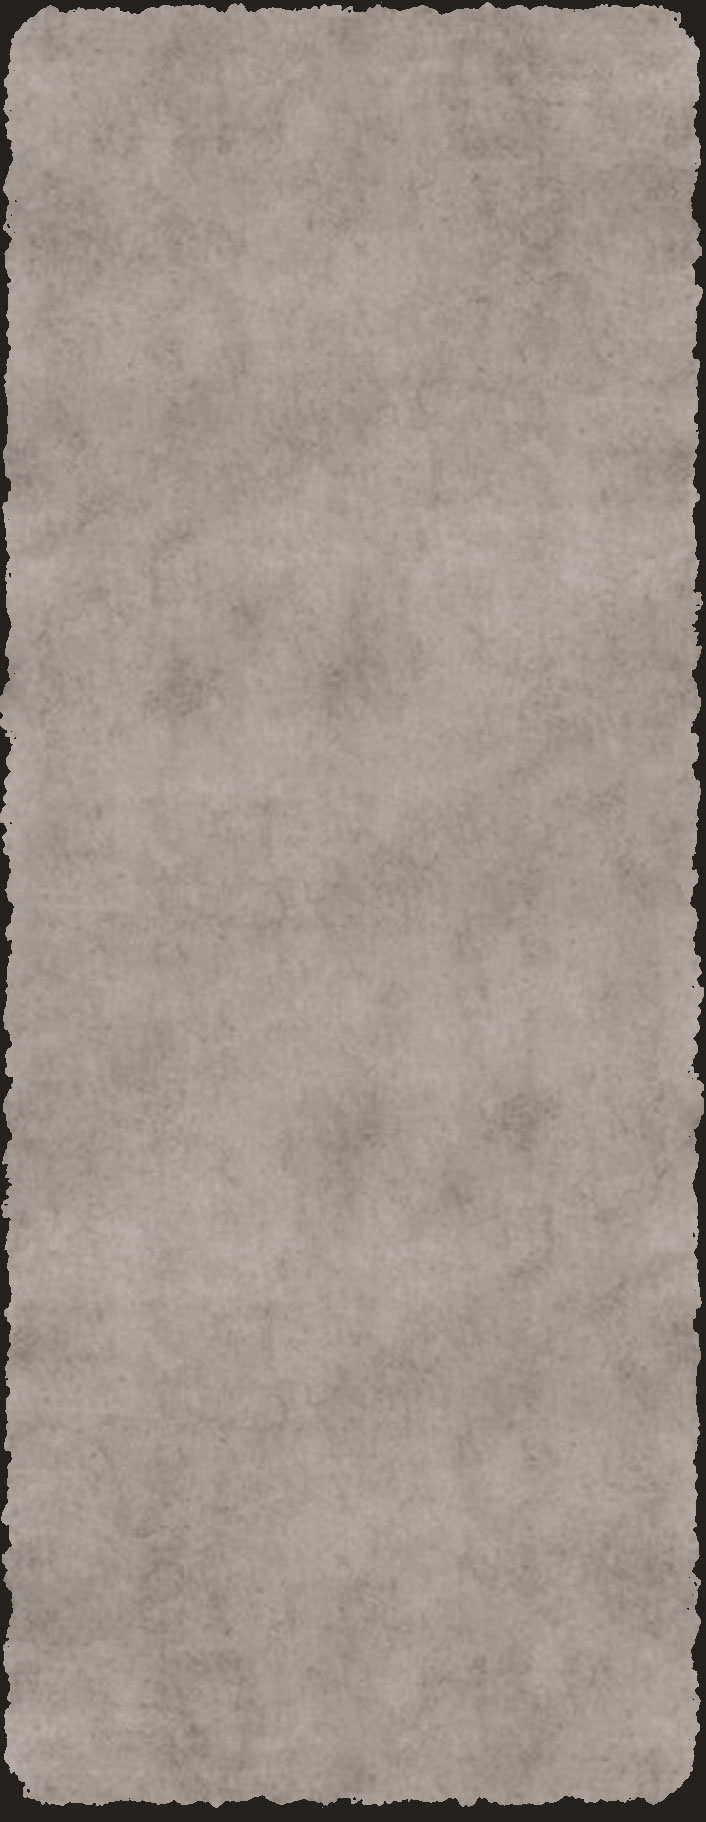 Parchment Background Image for My Downloads: TexMod Packs: In-Game Zoo Building TexMod ReTextures on FlightToAtlantis.net